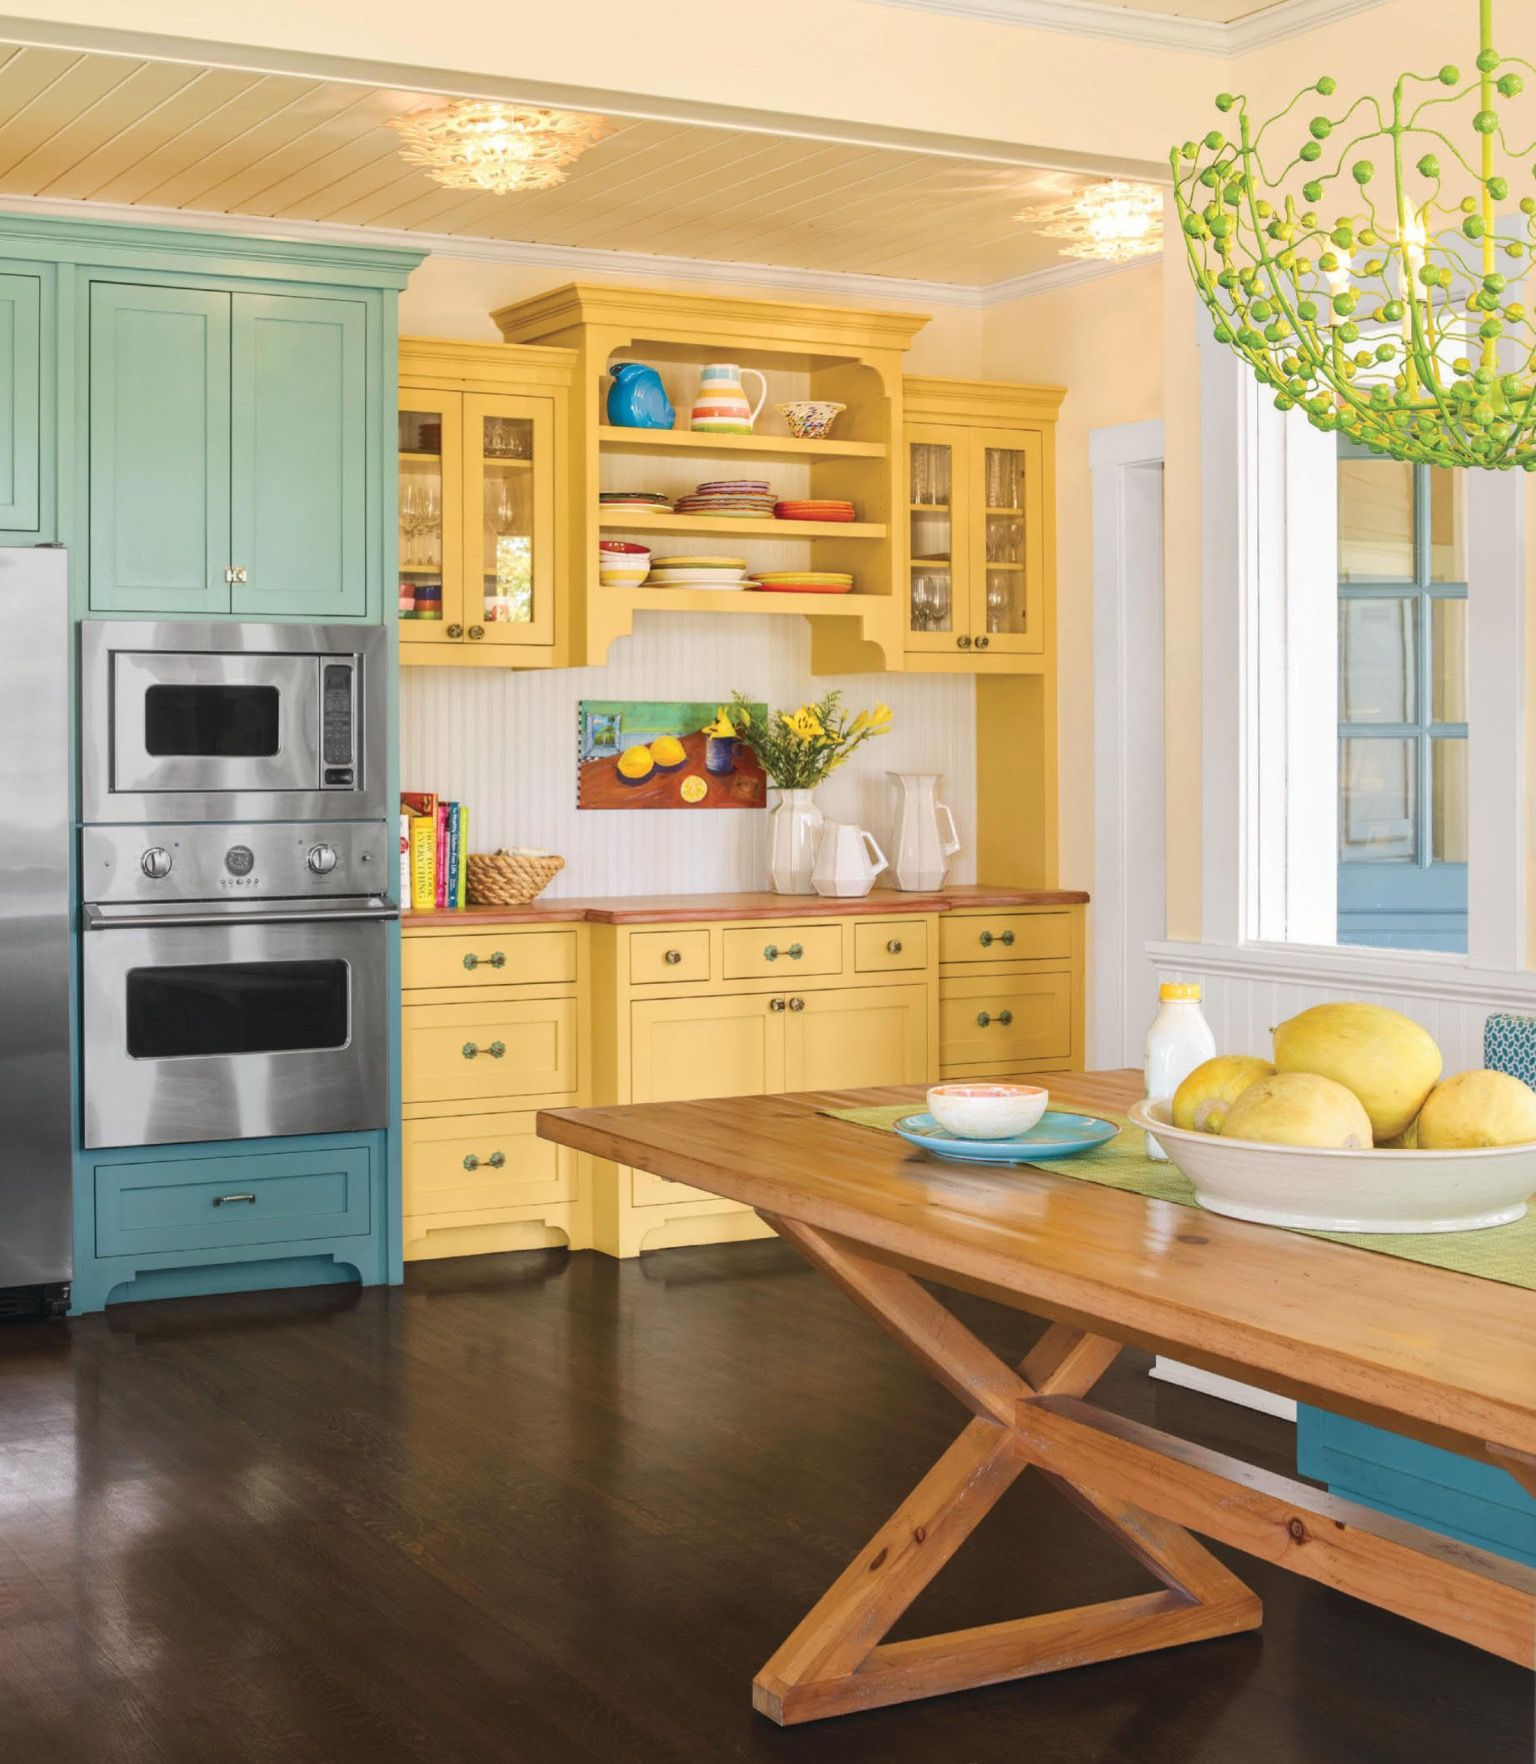 Pale Yellow Country Kitchen: Country Kitchen. Teal. Green. Yellow. This Old House